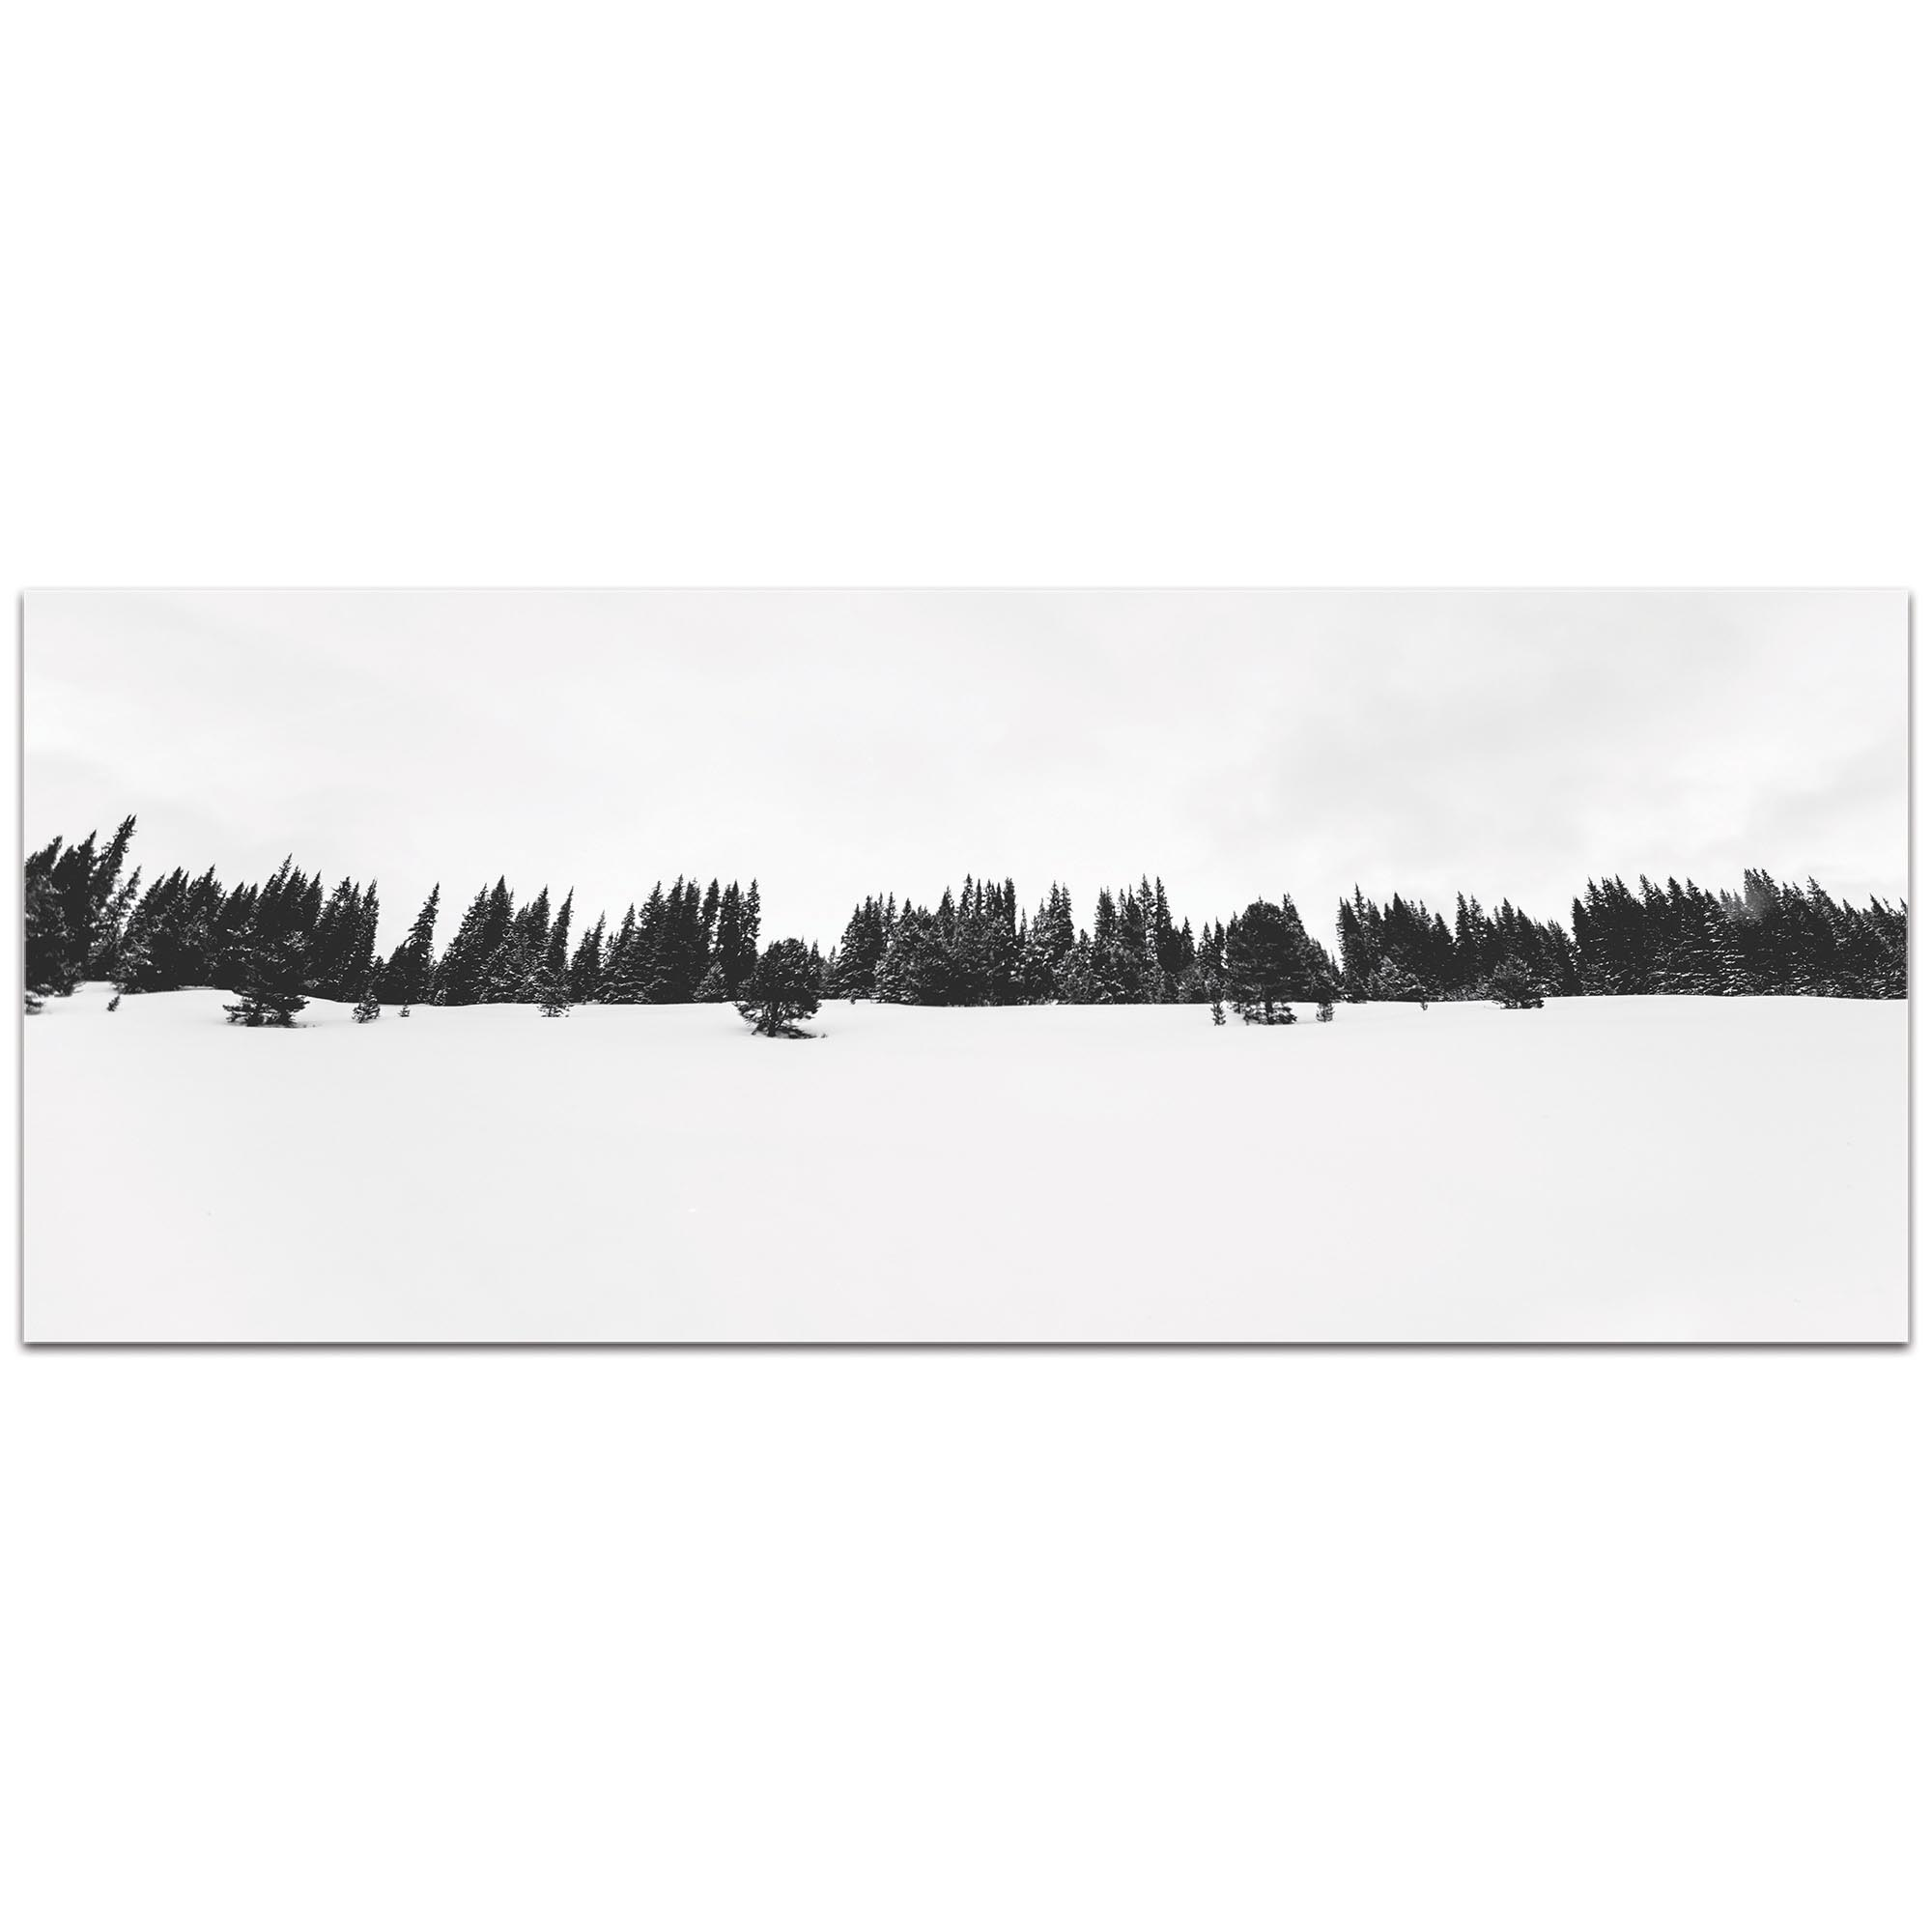 Landscape Photography 'Life Line' - Winter Trees Art on Metal or Plexiglass - Image 2